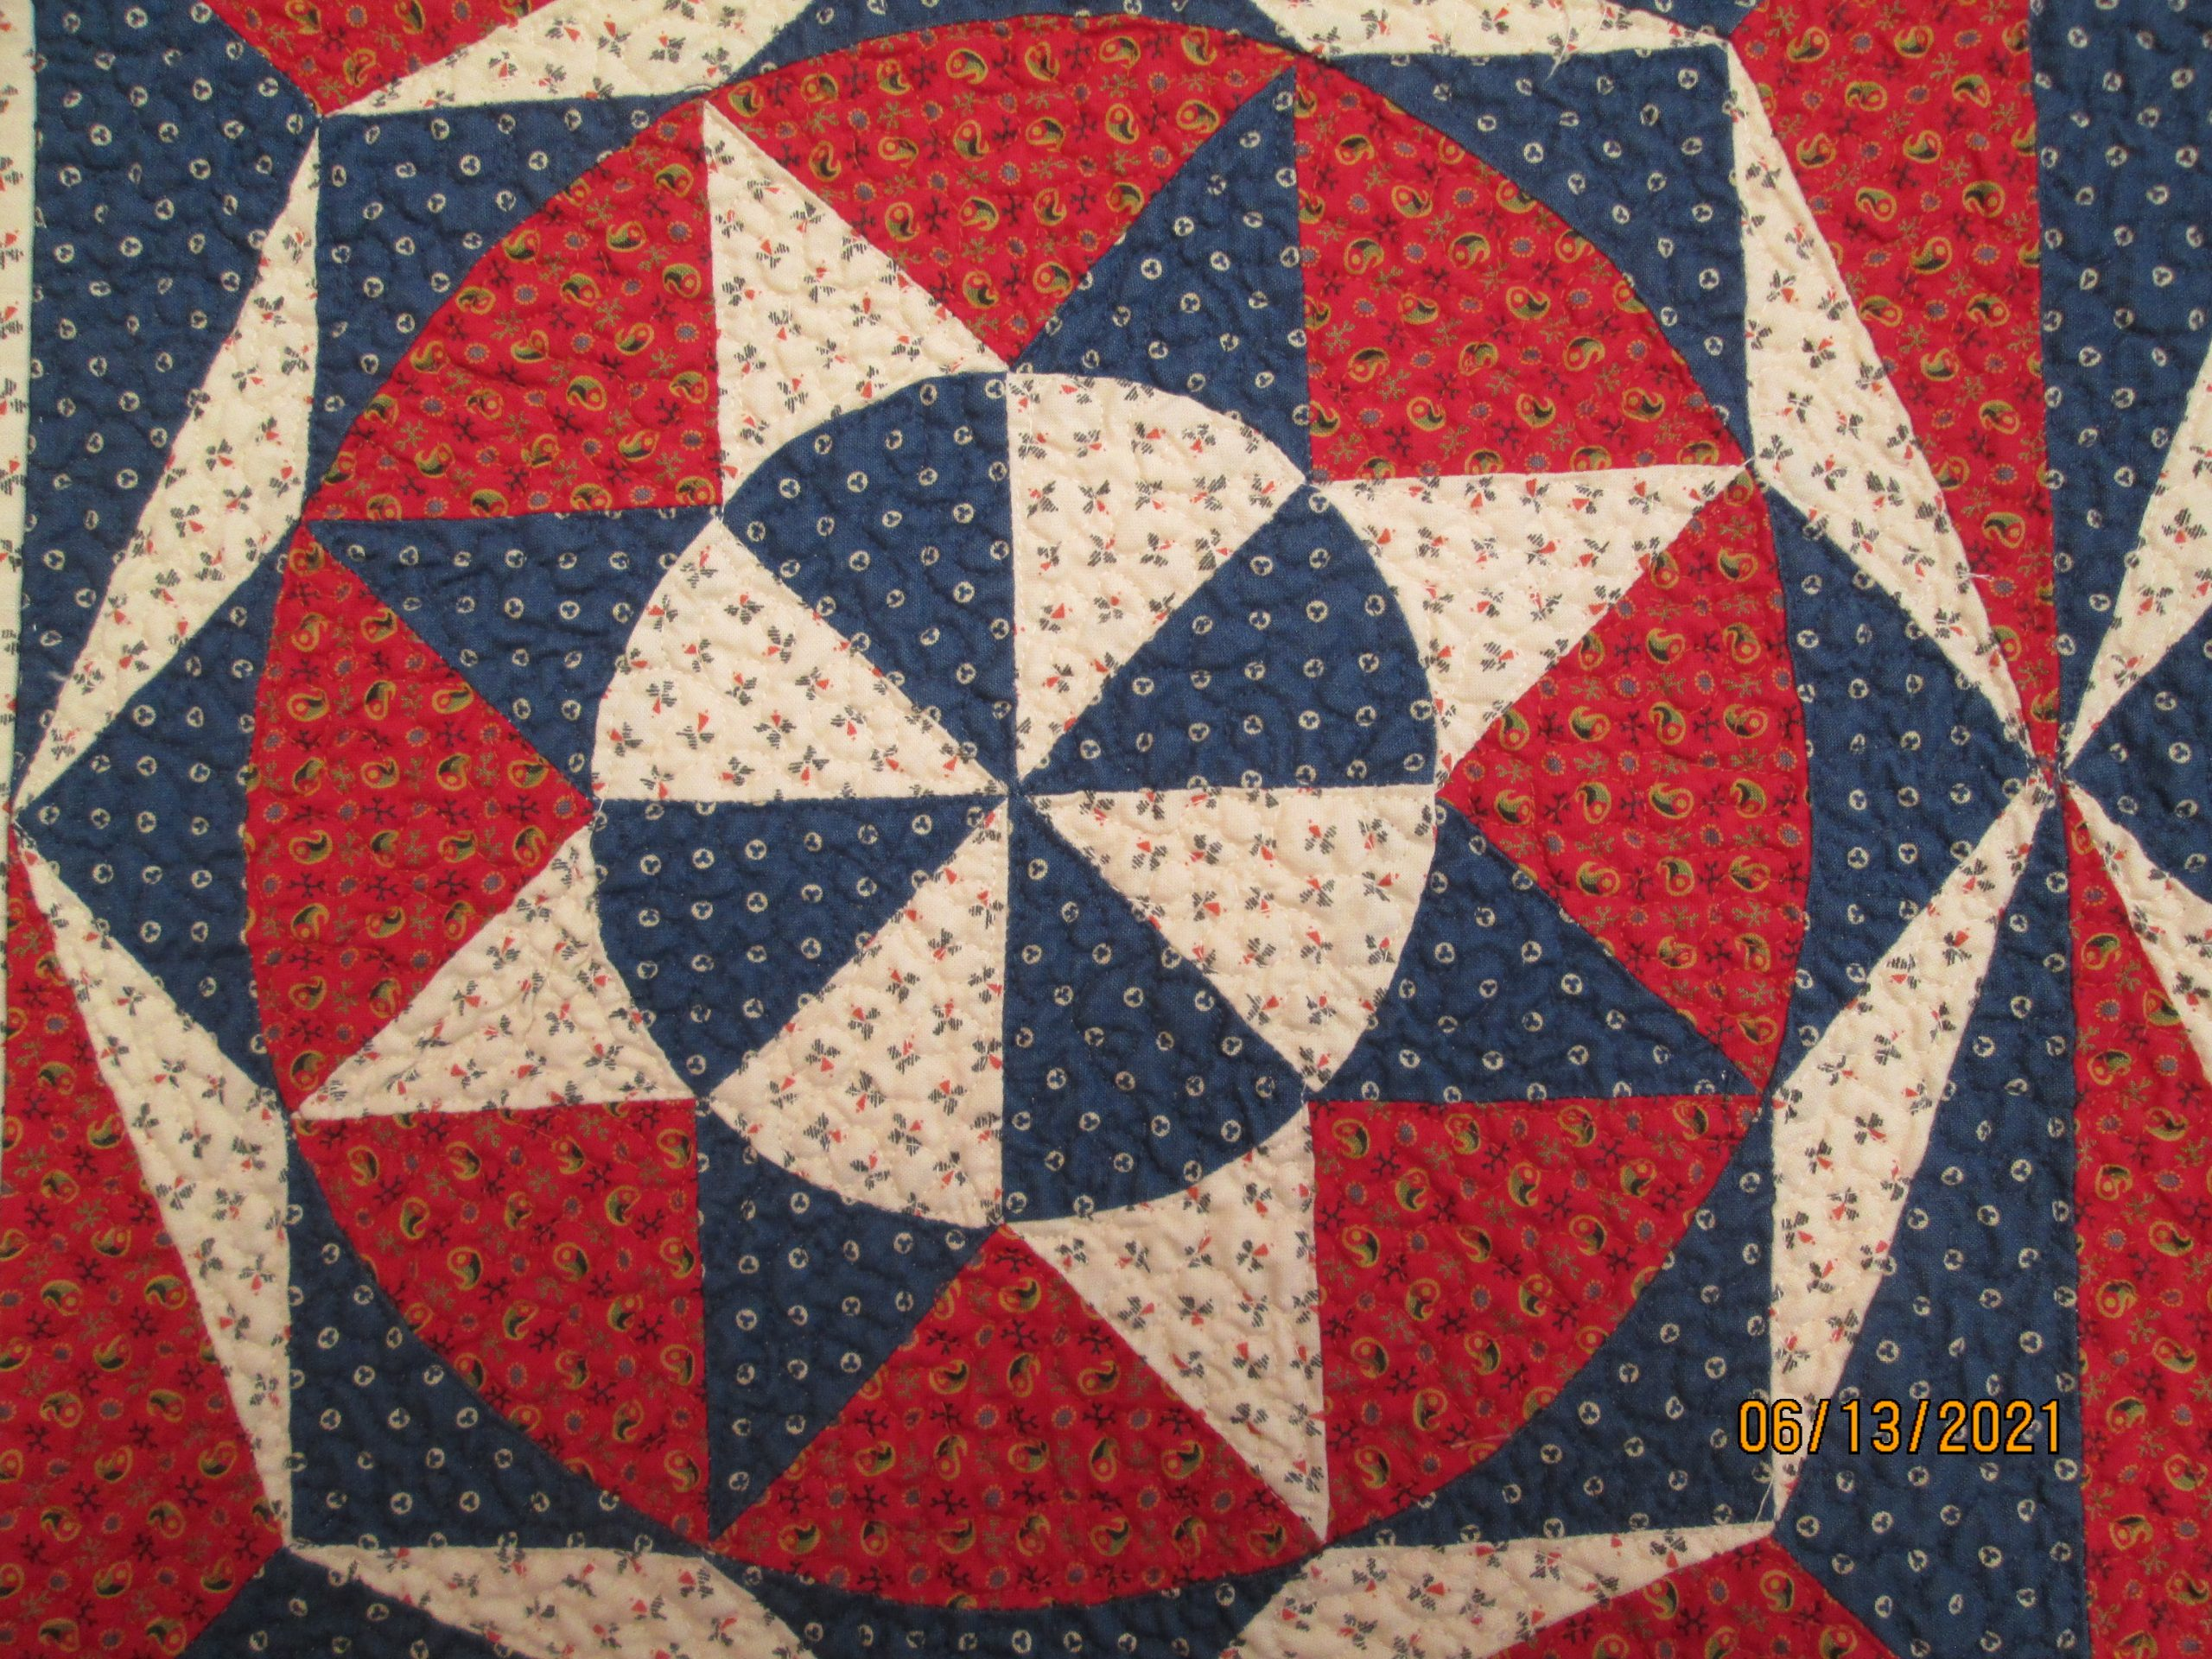 A star quilt pattern in red, white, and blue.